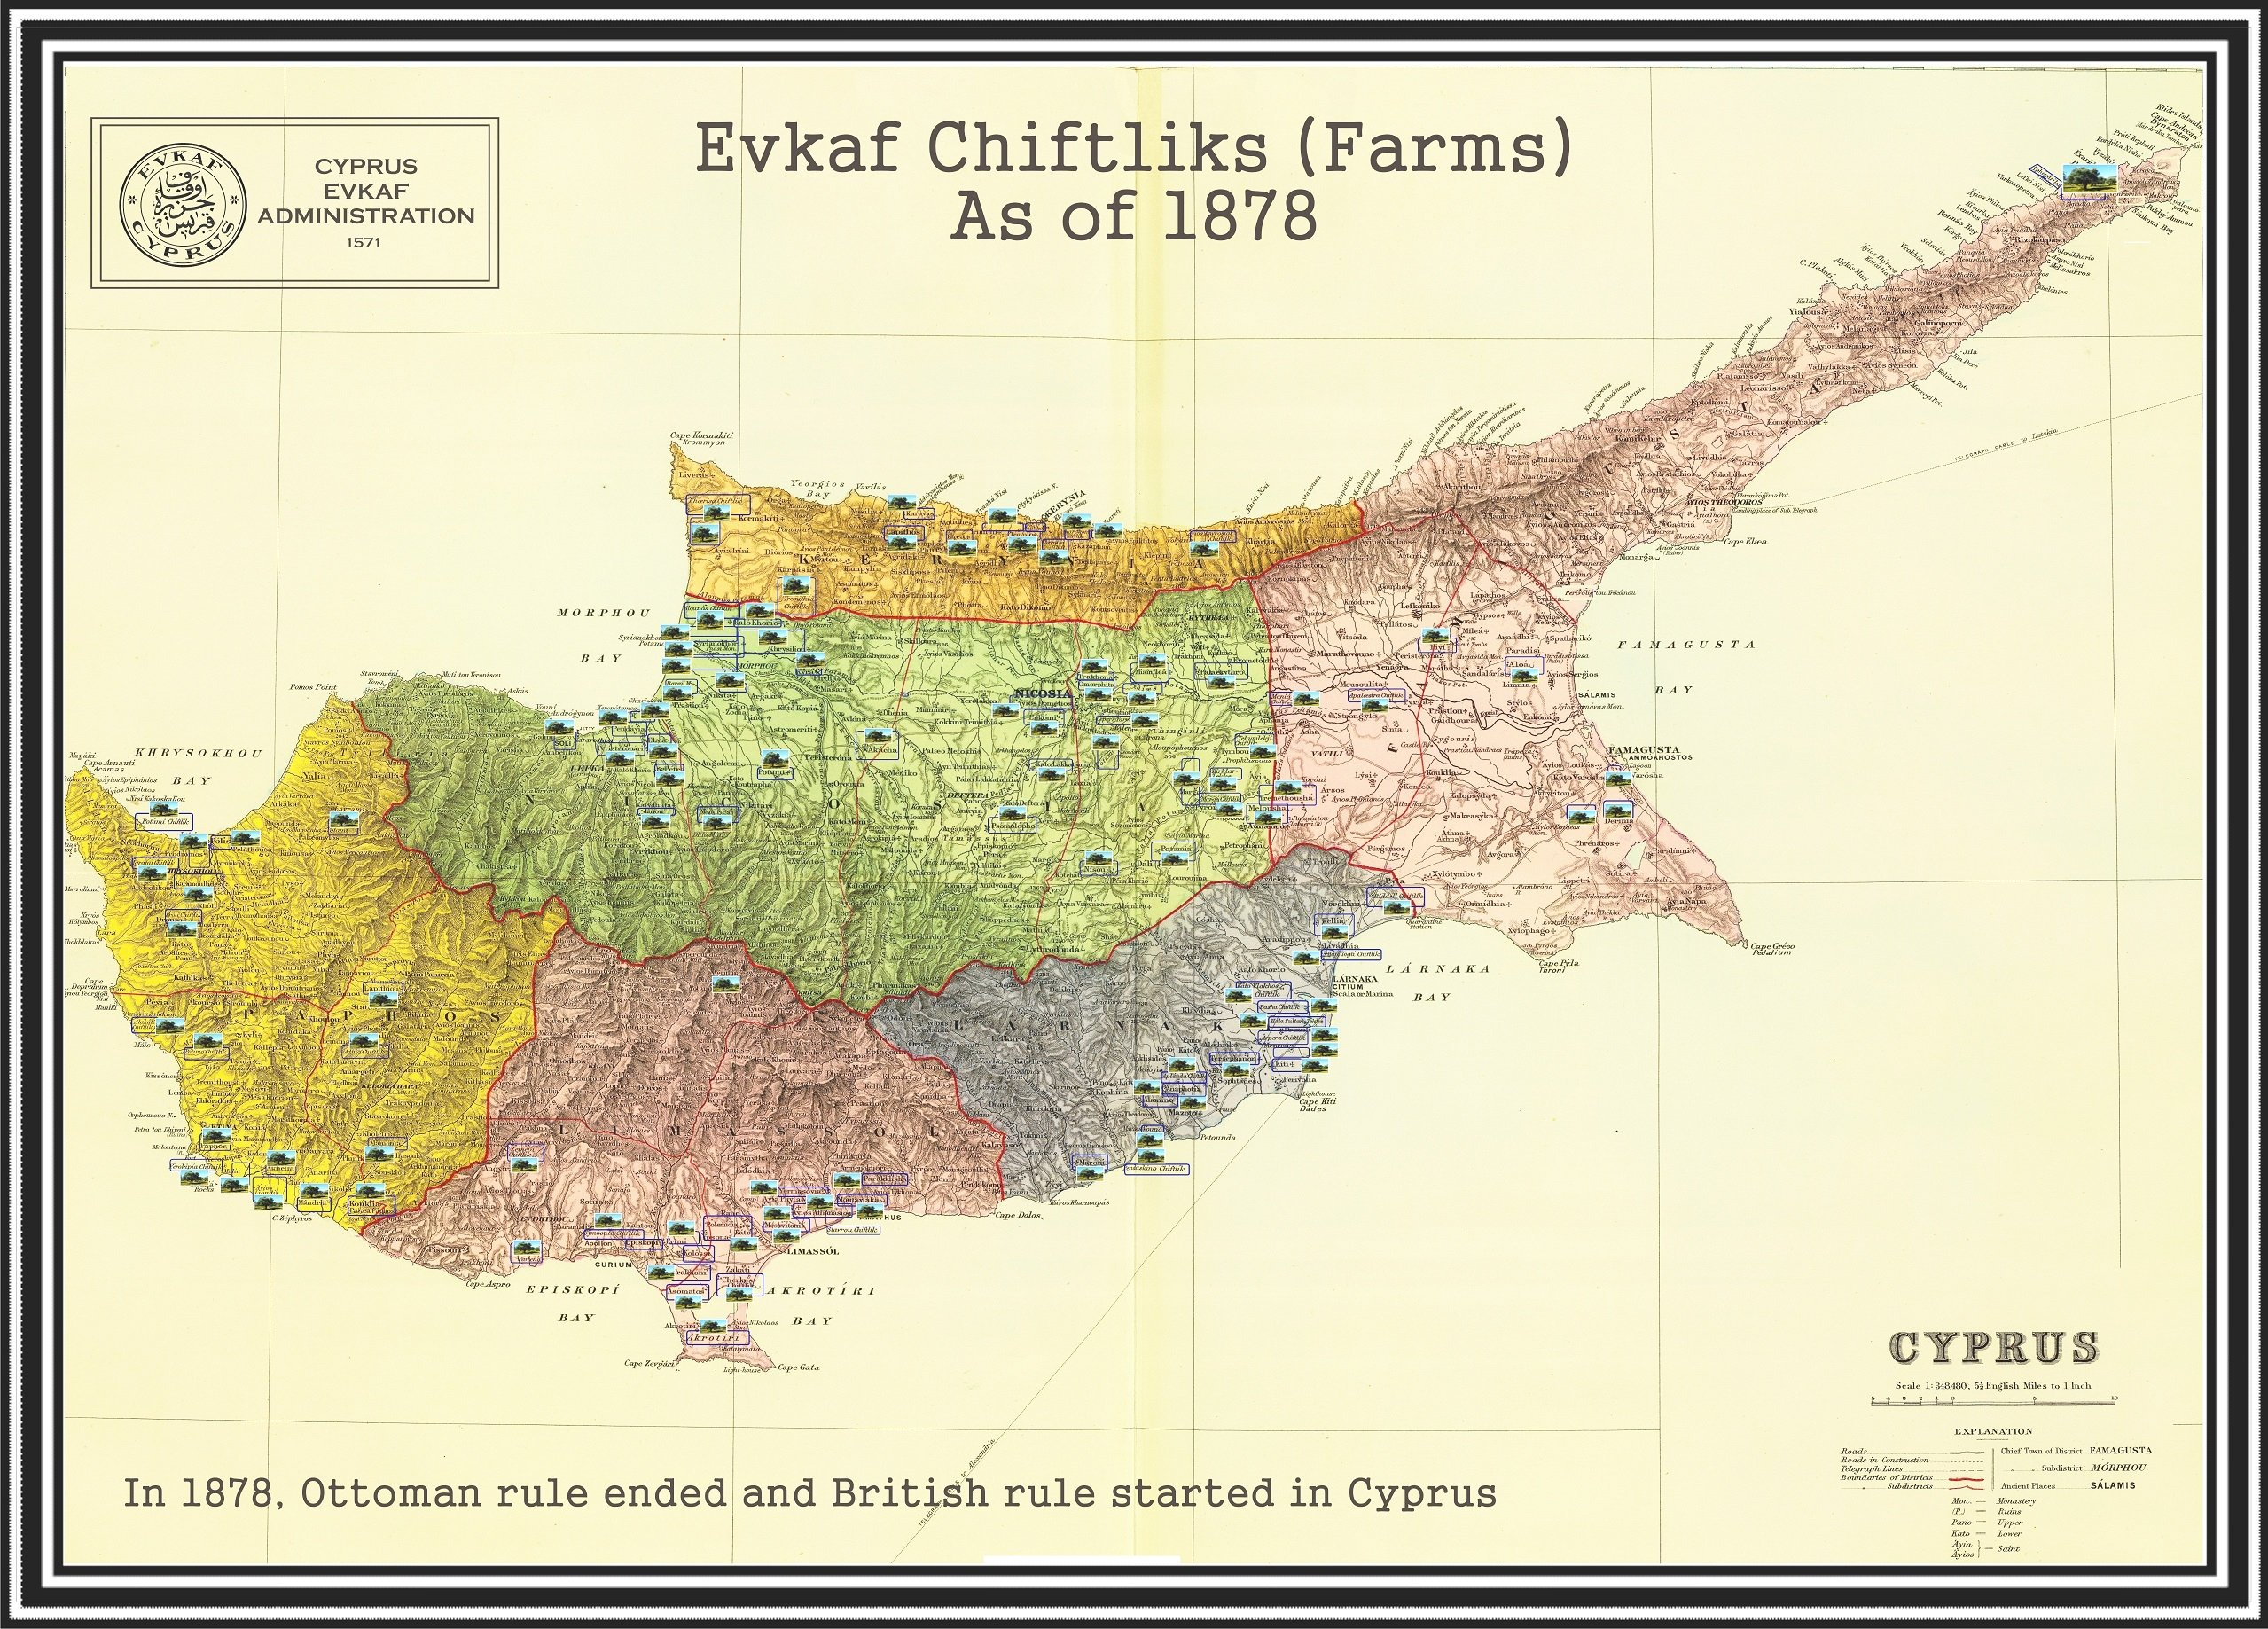 This map provided by the Evkaf Foundation shows farms endowed as waqf properties in Cyprus in 1878, when the British assumed the control of the island from the Ottomans. Three farms are visible in Varosha.